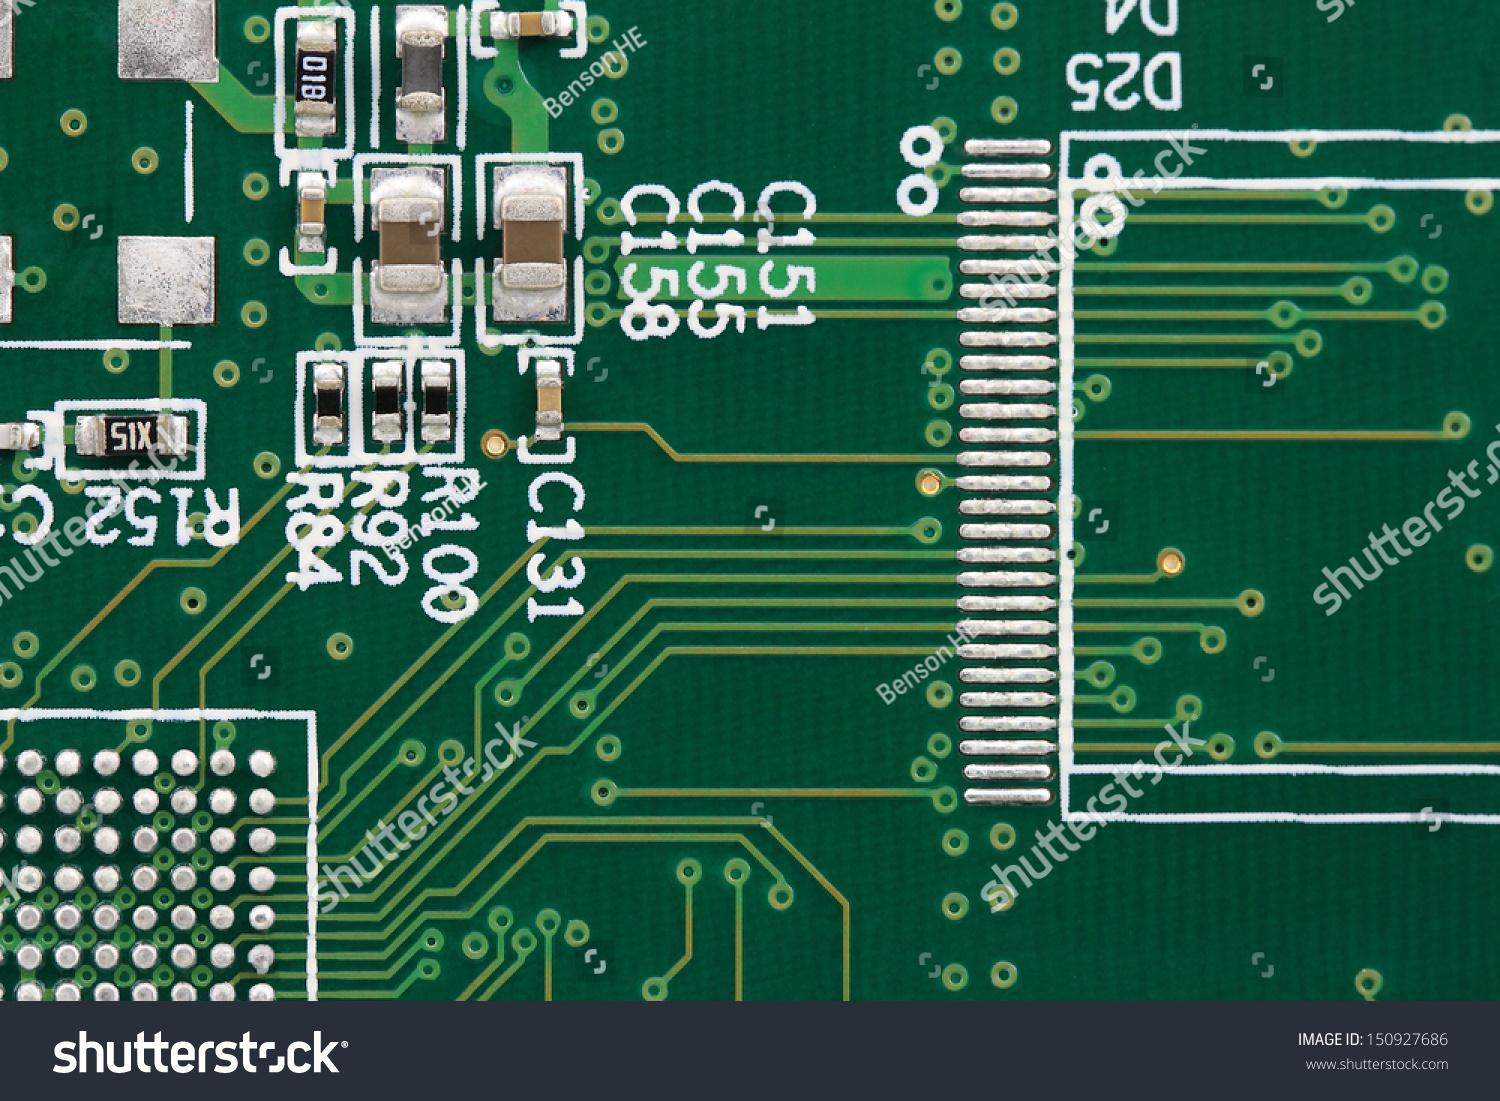 Wiring On Printed Board Chip Stock Photo Edit Now 150927686 Resistors A With And Capacitors Mounted